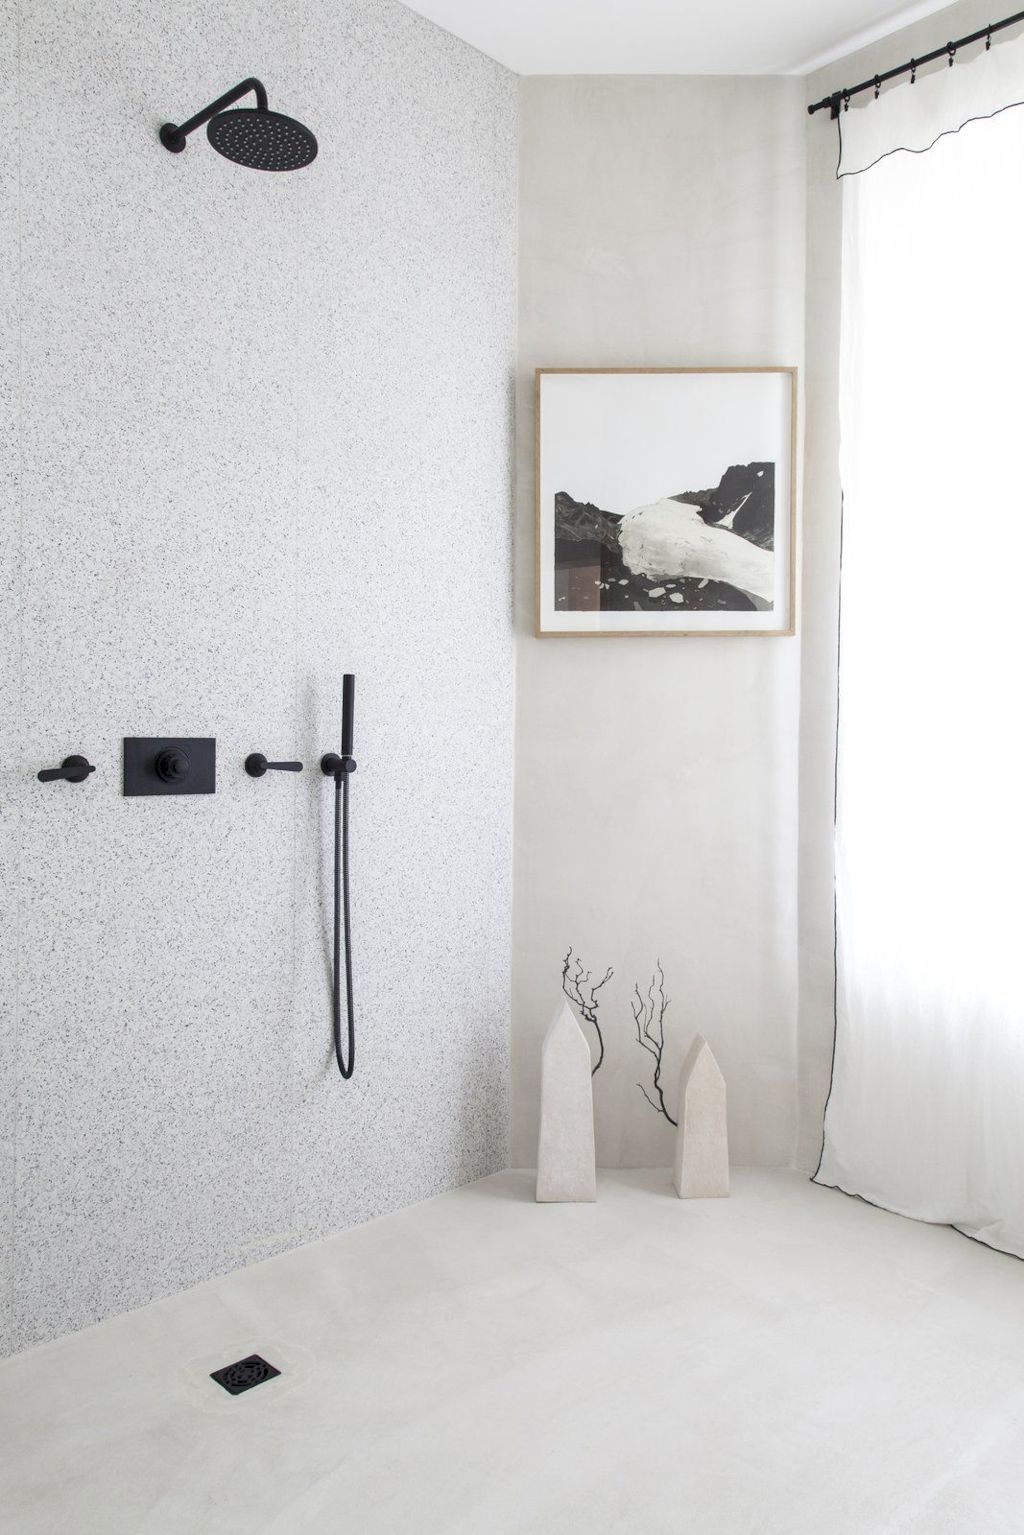 Creative bathroom updates mixing modern trend with simple 60s terrazzo style giving a brilliant contemporary balance Image 13